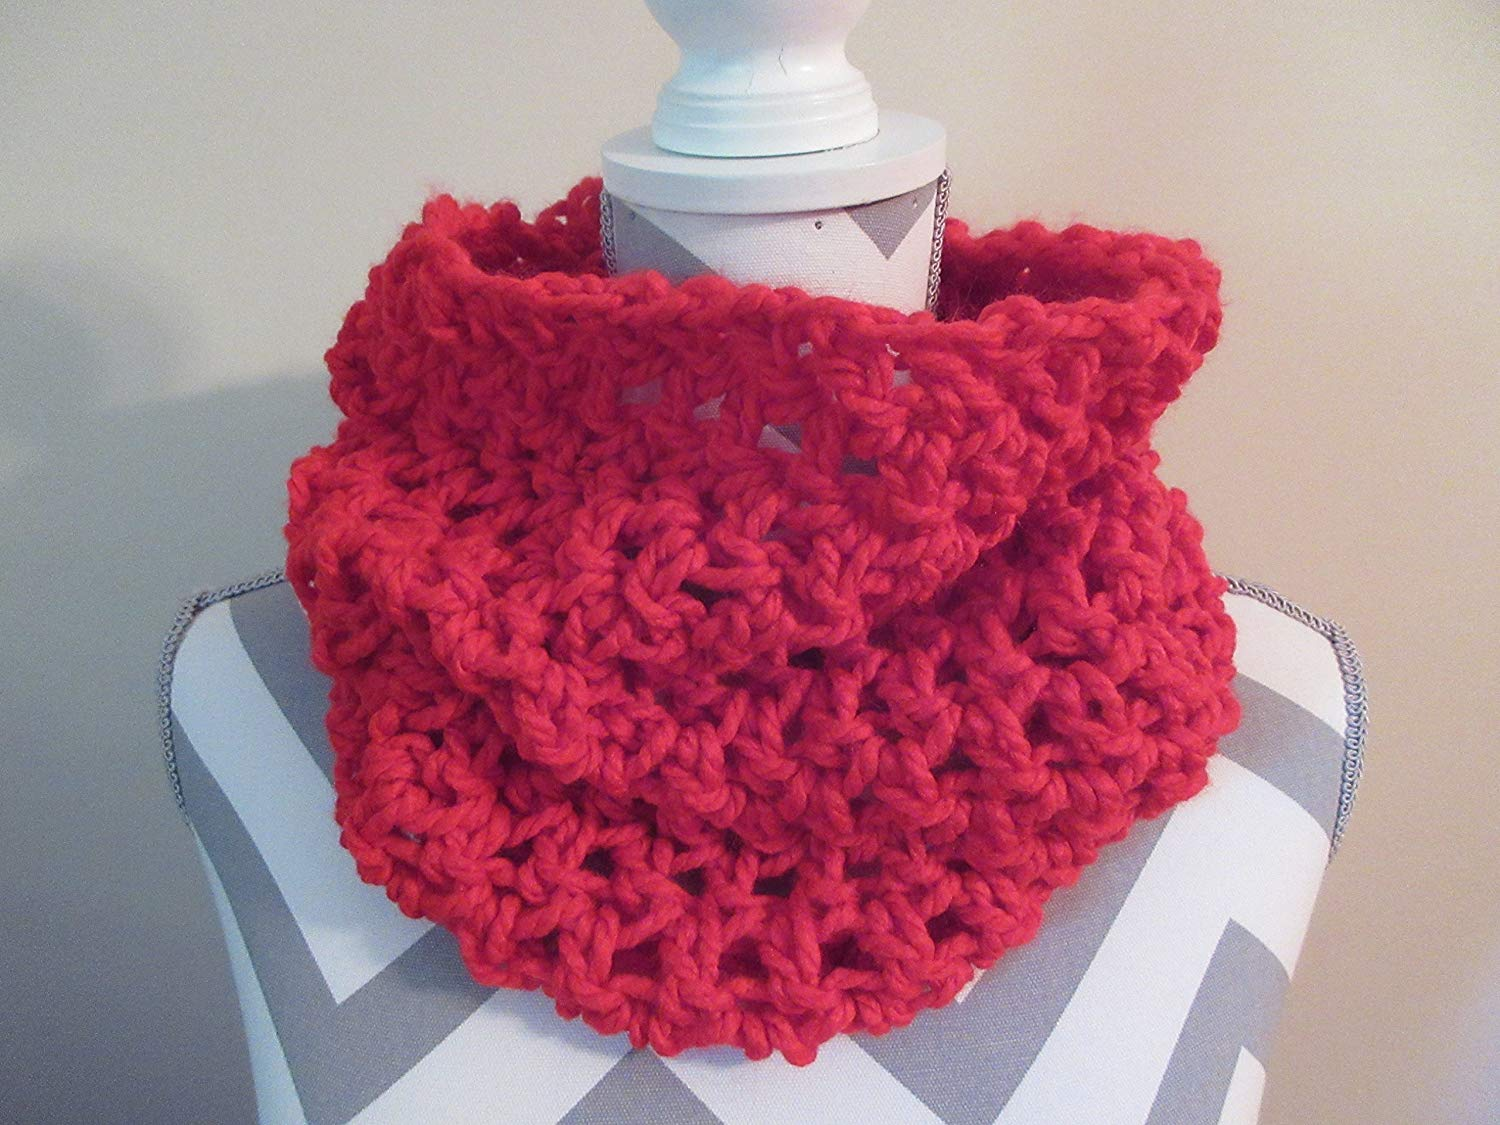 Hand Crocheted Red Chunky Cowl Scarf Cowl Design Hoodie Neck Warmer or Drape Down Unisex One Size Fits All Handmade Gift for Her Gift Bag and Ribbon Included